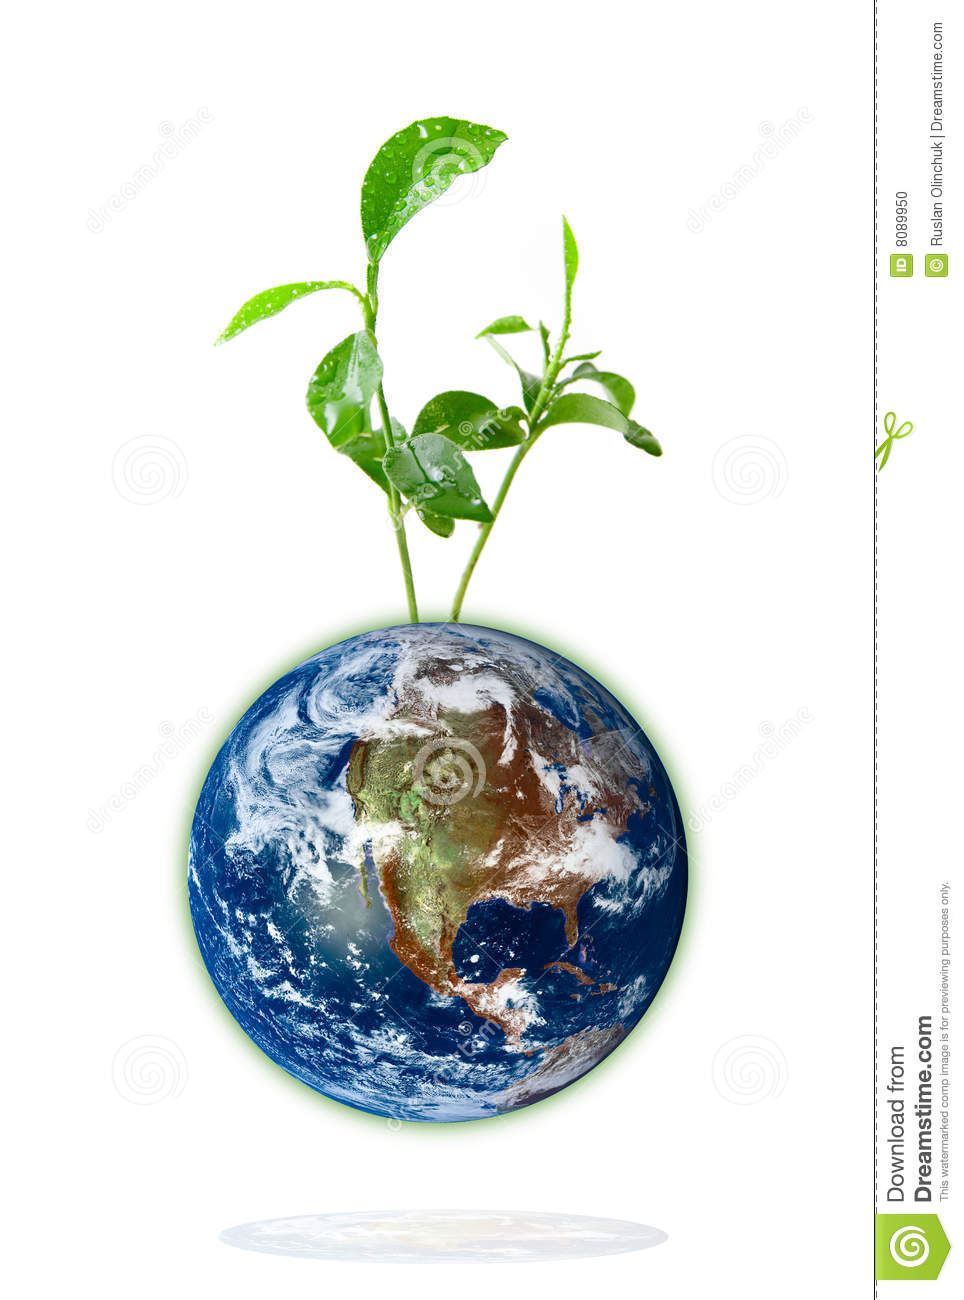 Baby Plant Growing From The Earth Stock Photo Image 8089950